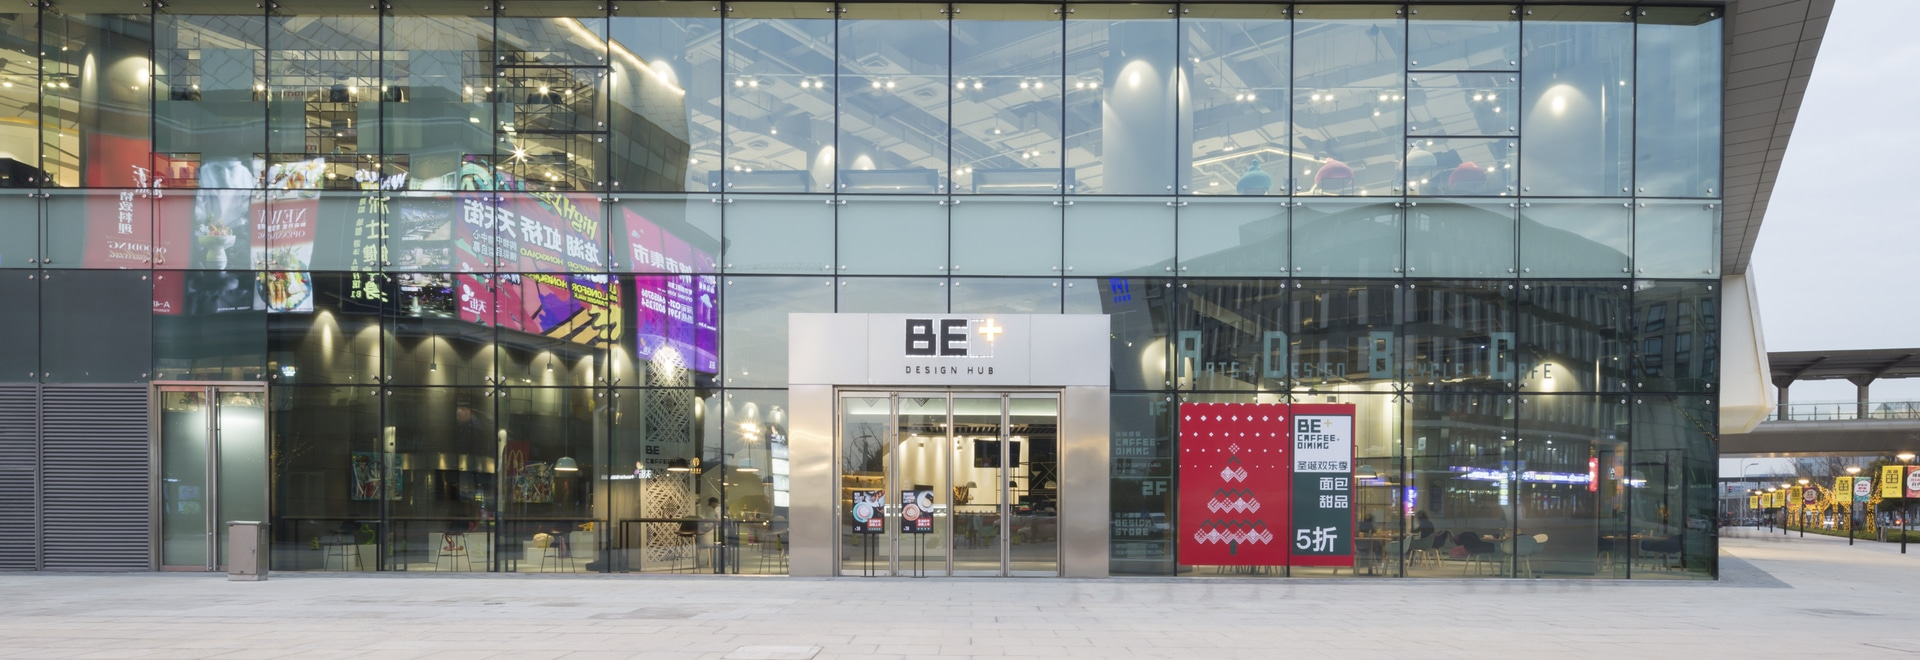 BE+ Design Hub, Shanghai, China feat. TOOU TA Collection.